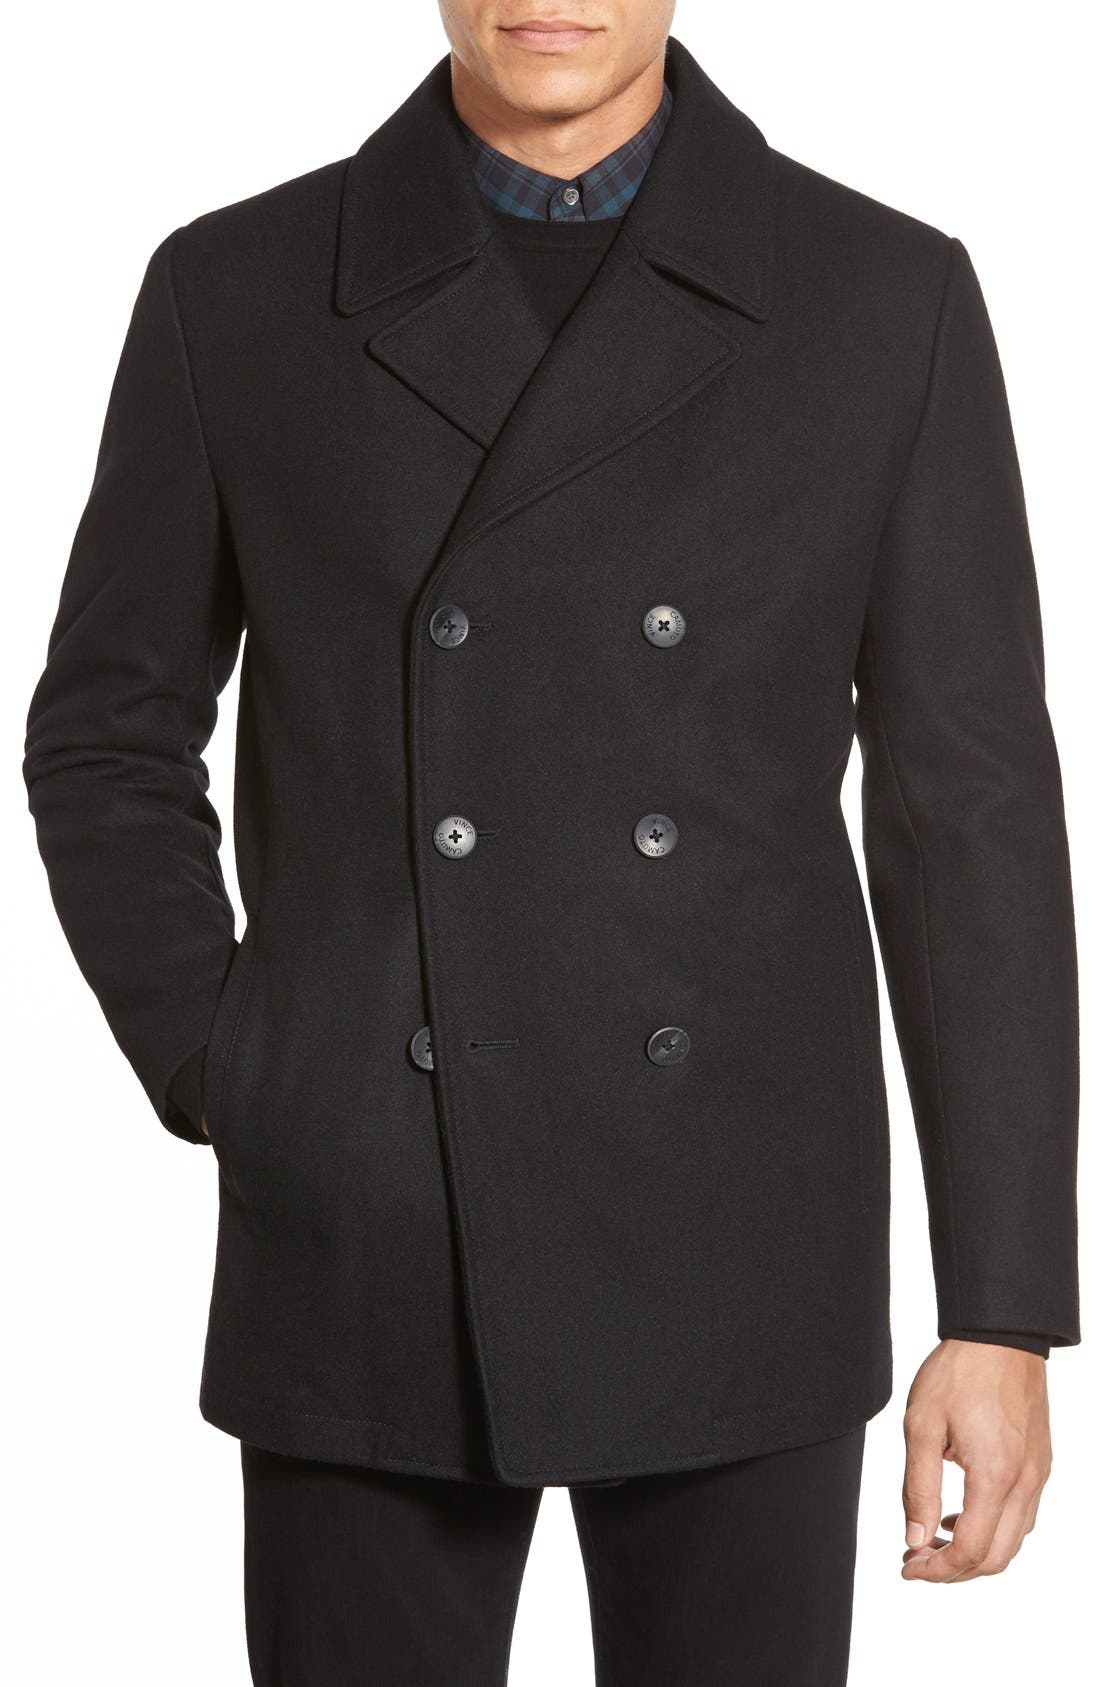 Alternate Image 1 Selected - Vince Camuto Classic Peacoat